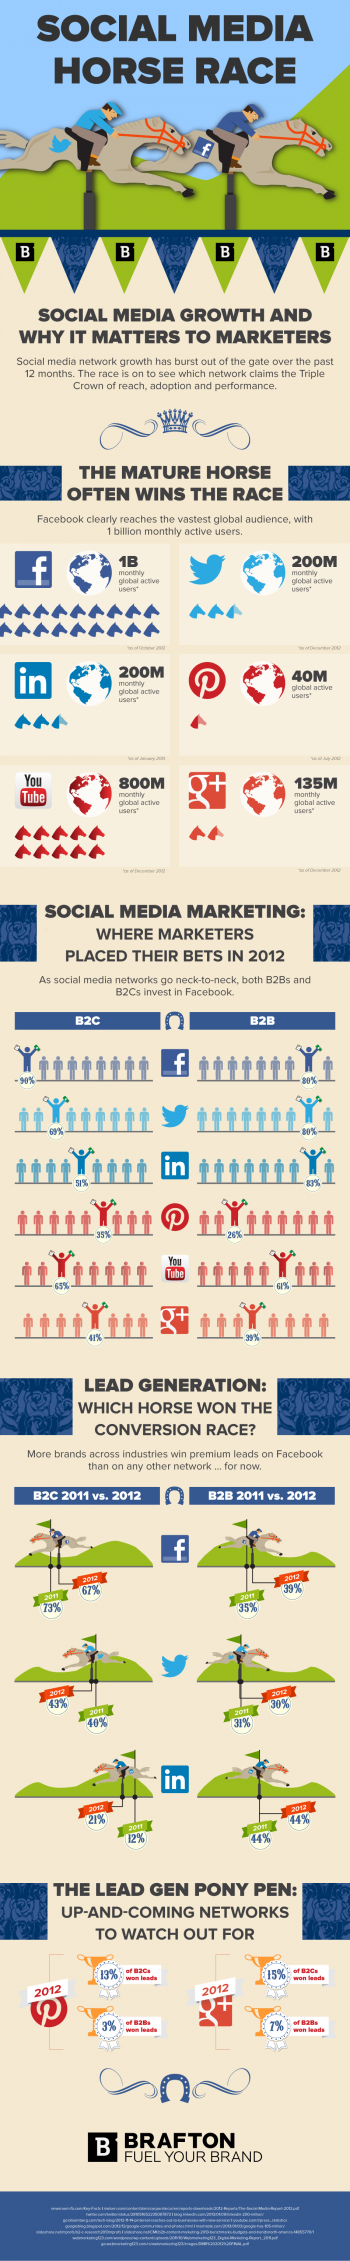 Brafton's Infographic: Social Media Horse Race